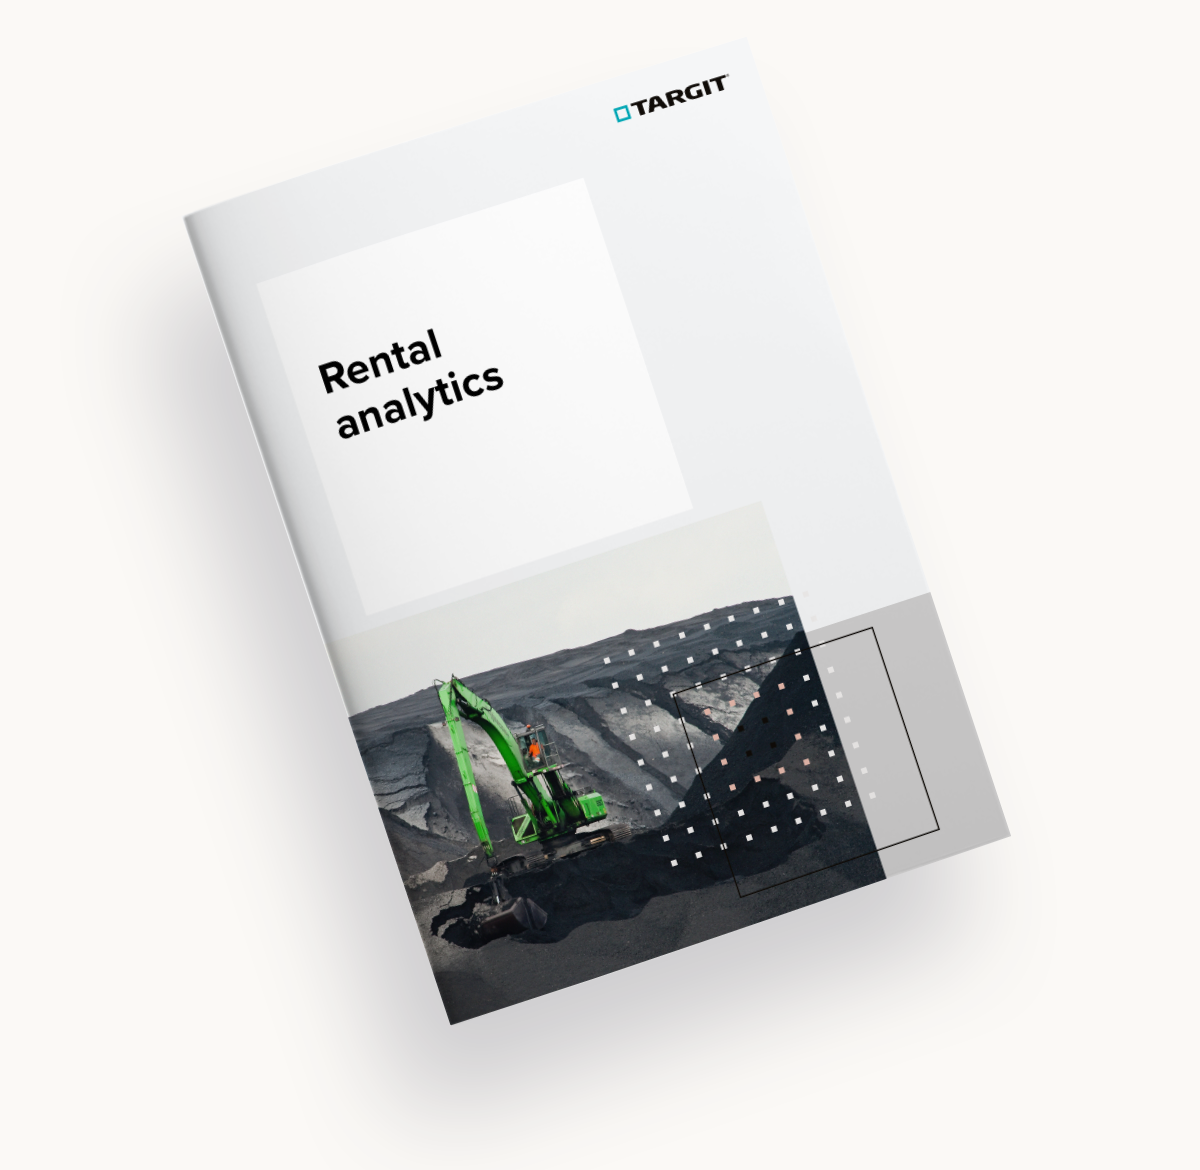 Rental analytics solid cover